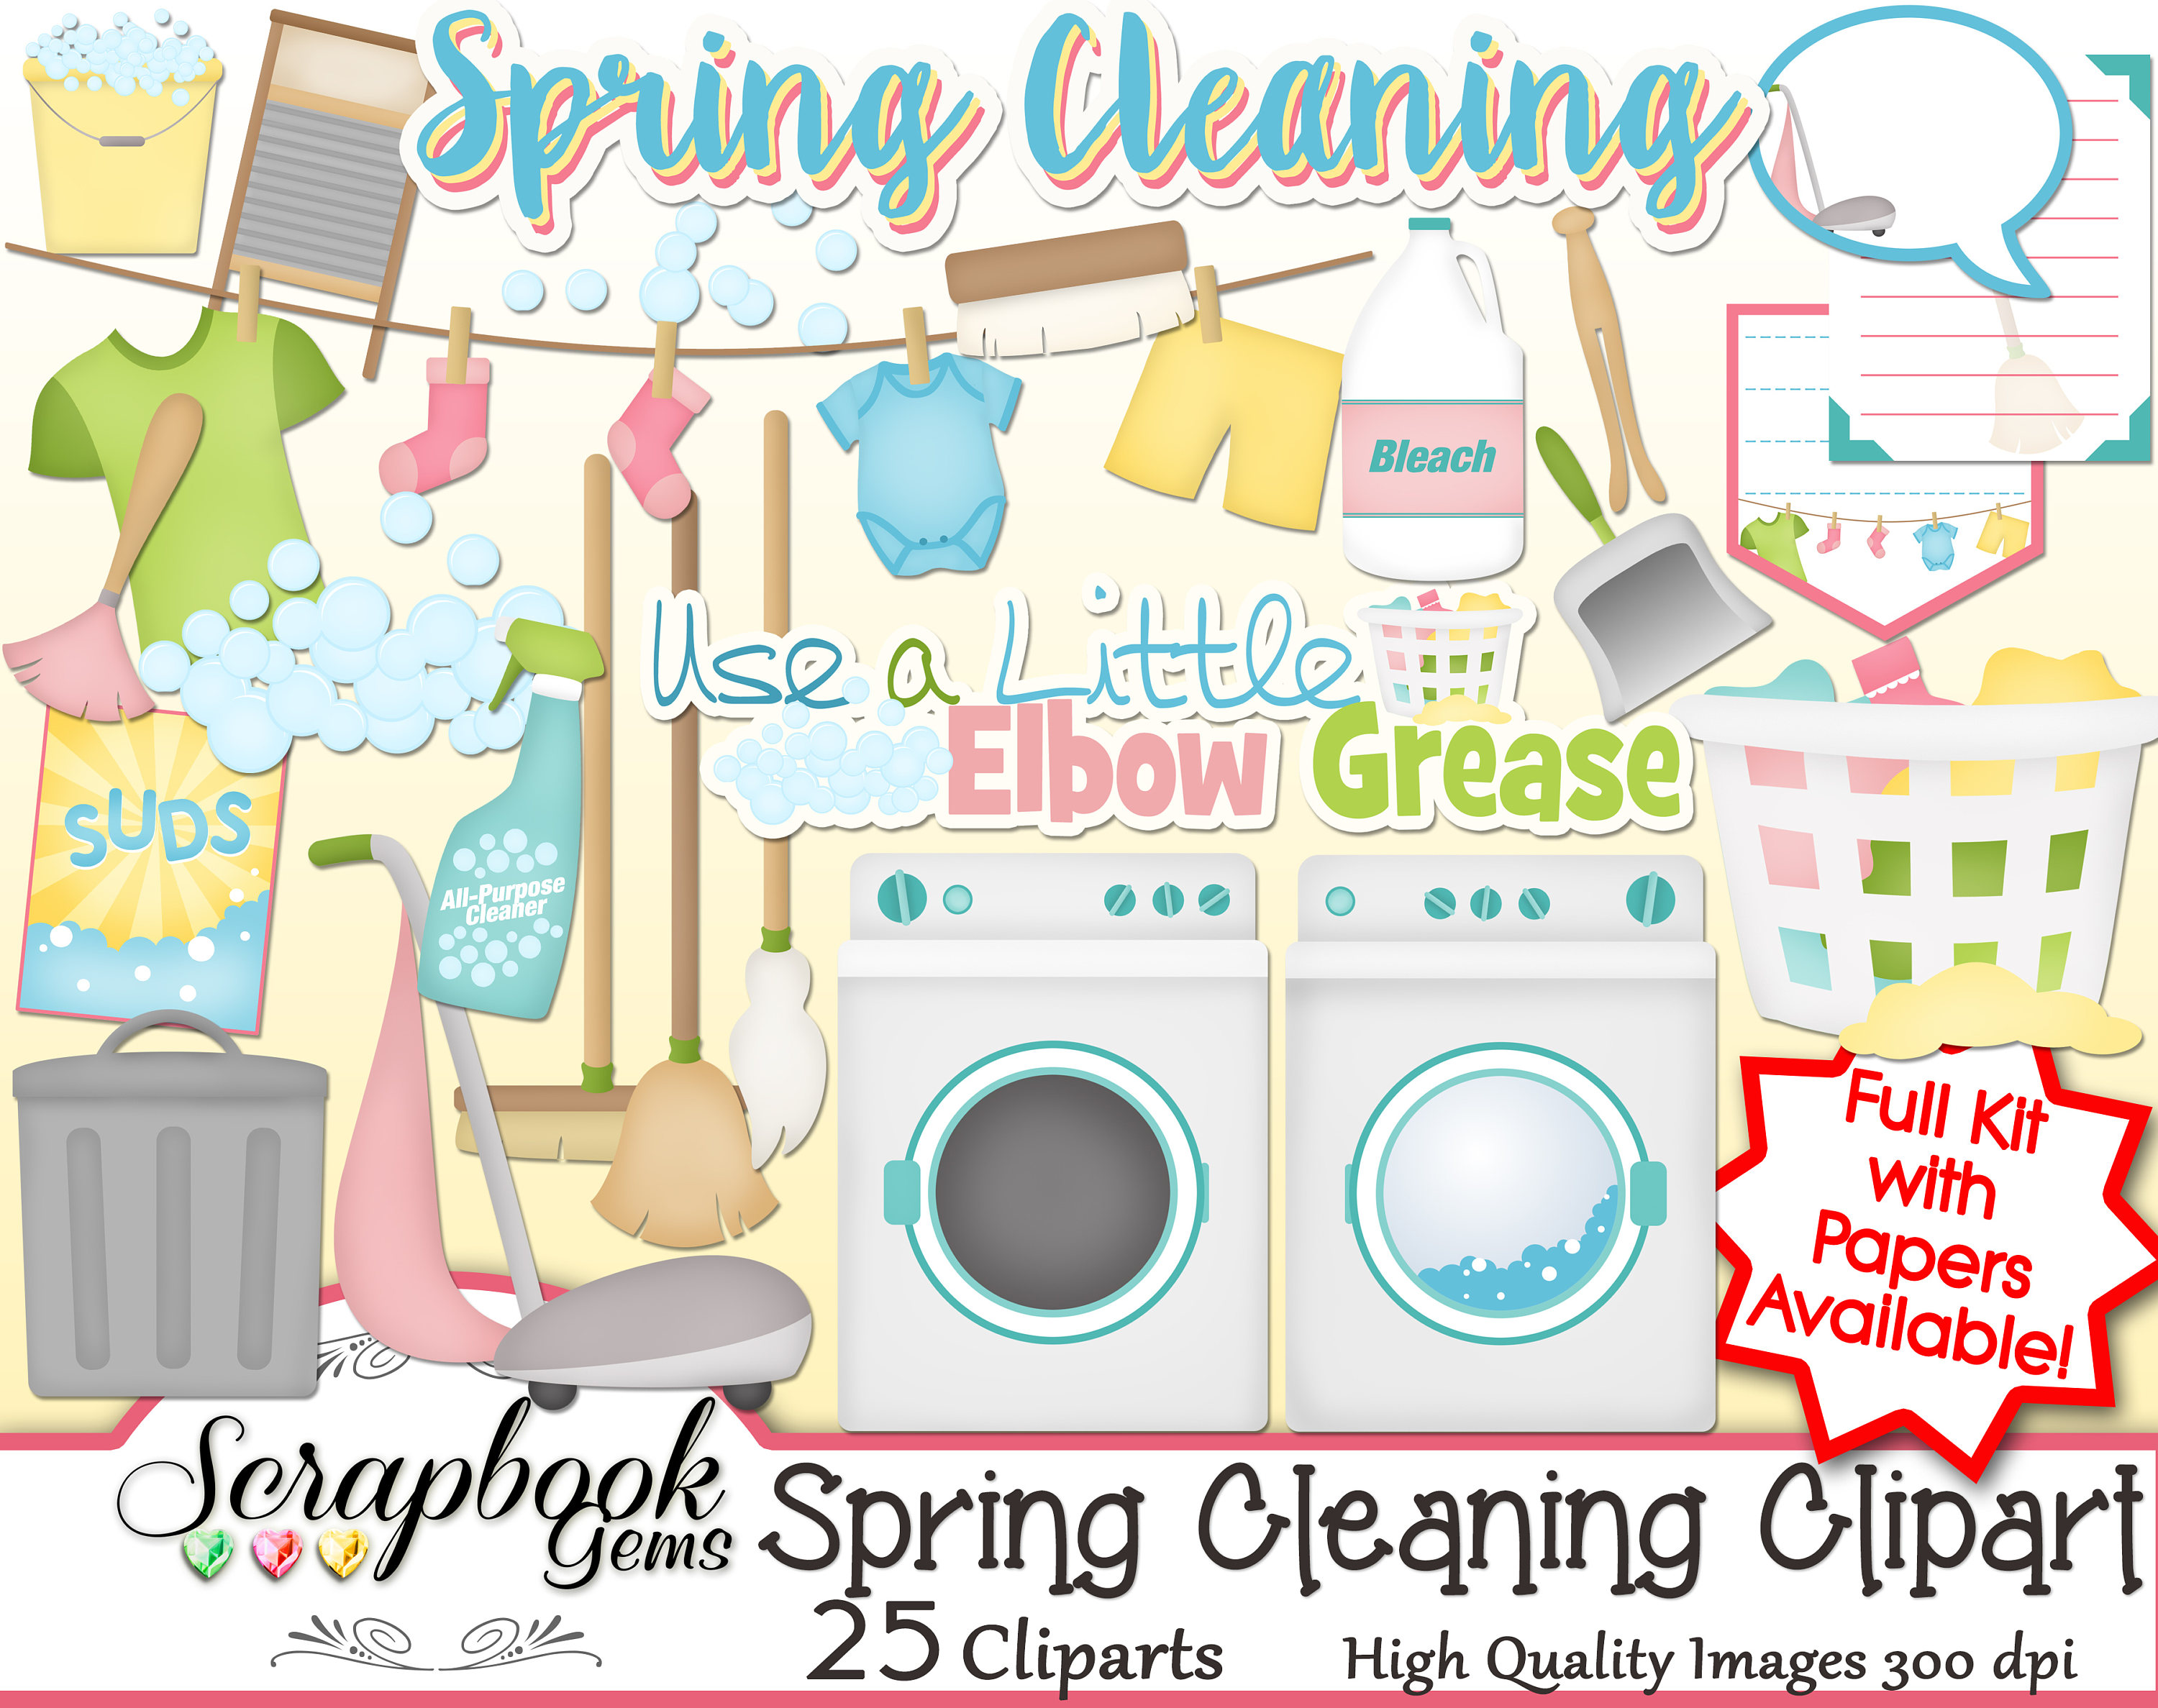 SPRING CLEANING Clipart, 25 png Clipart files Instant Download cleaner  washer dryer laundry cloths line trash vacuum broom mop dust bubbles.